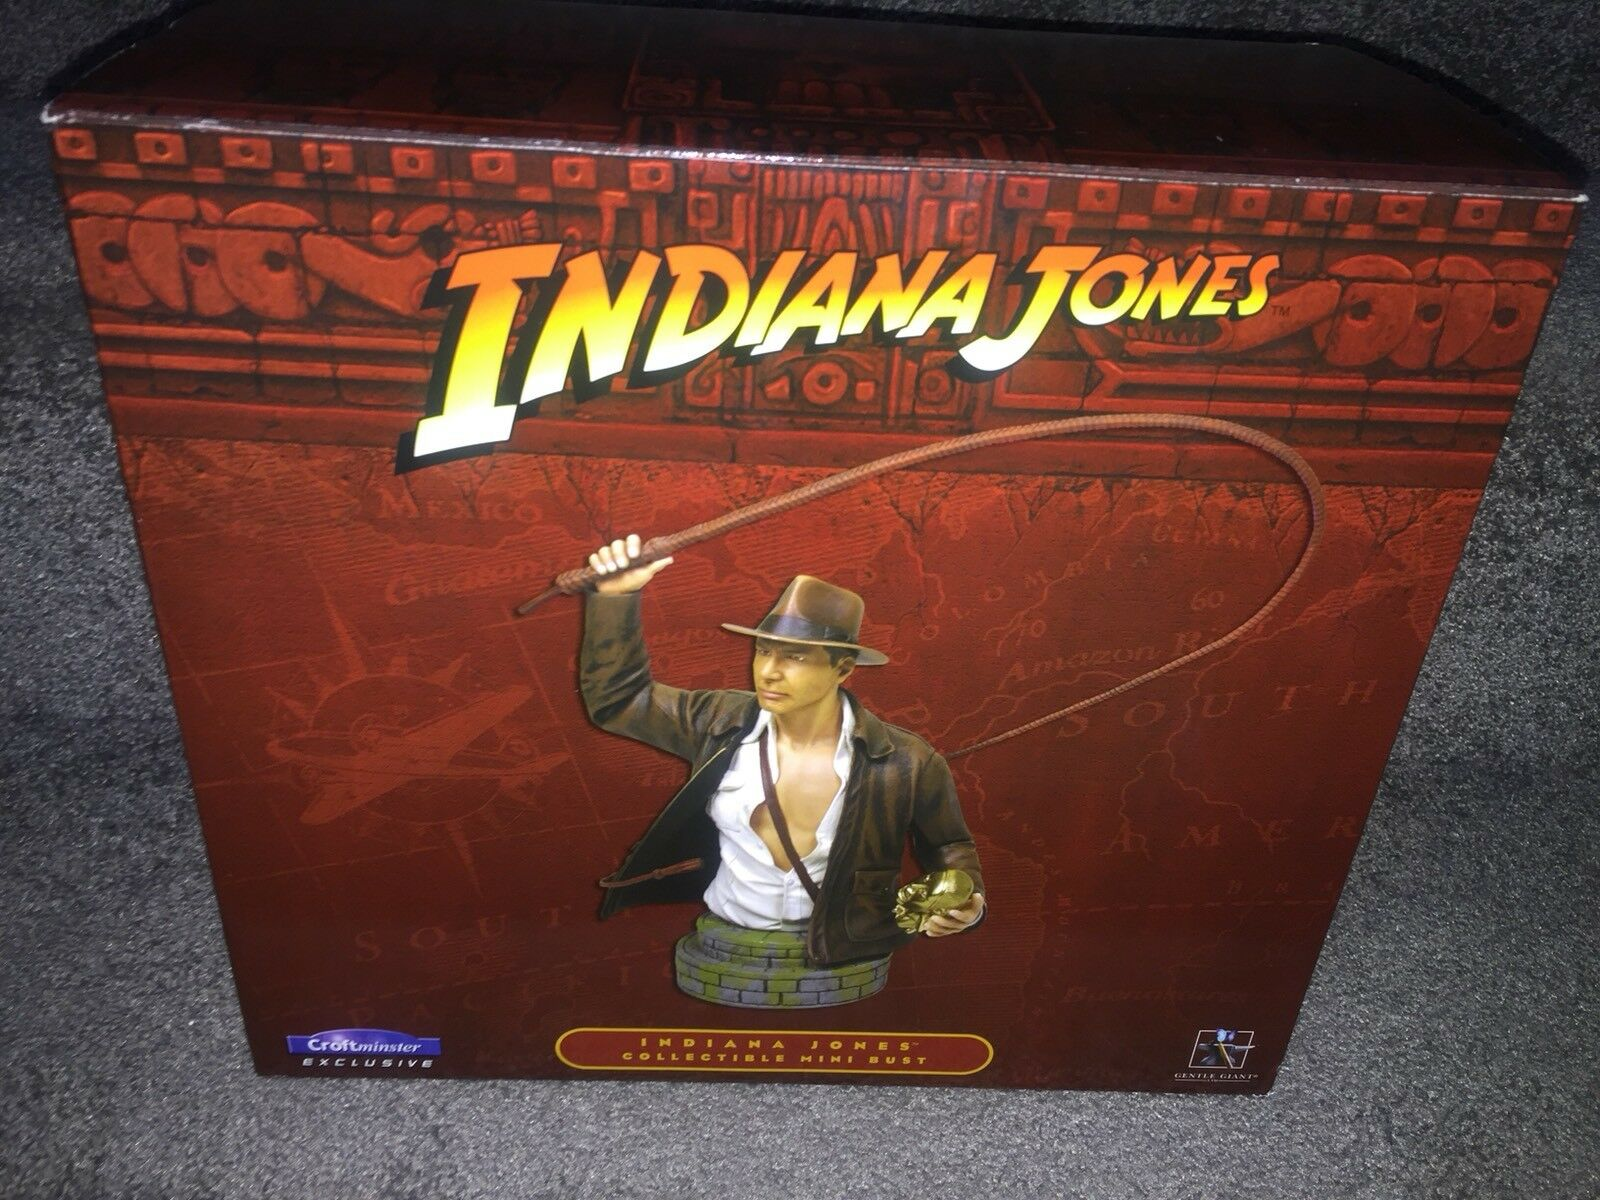 INDIANA JONES CROFTMINSTER EXCLUSIVE COLLECTIBLE MINI BUST